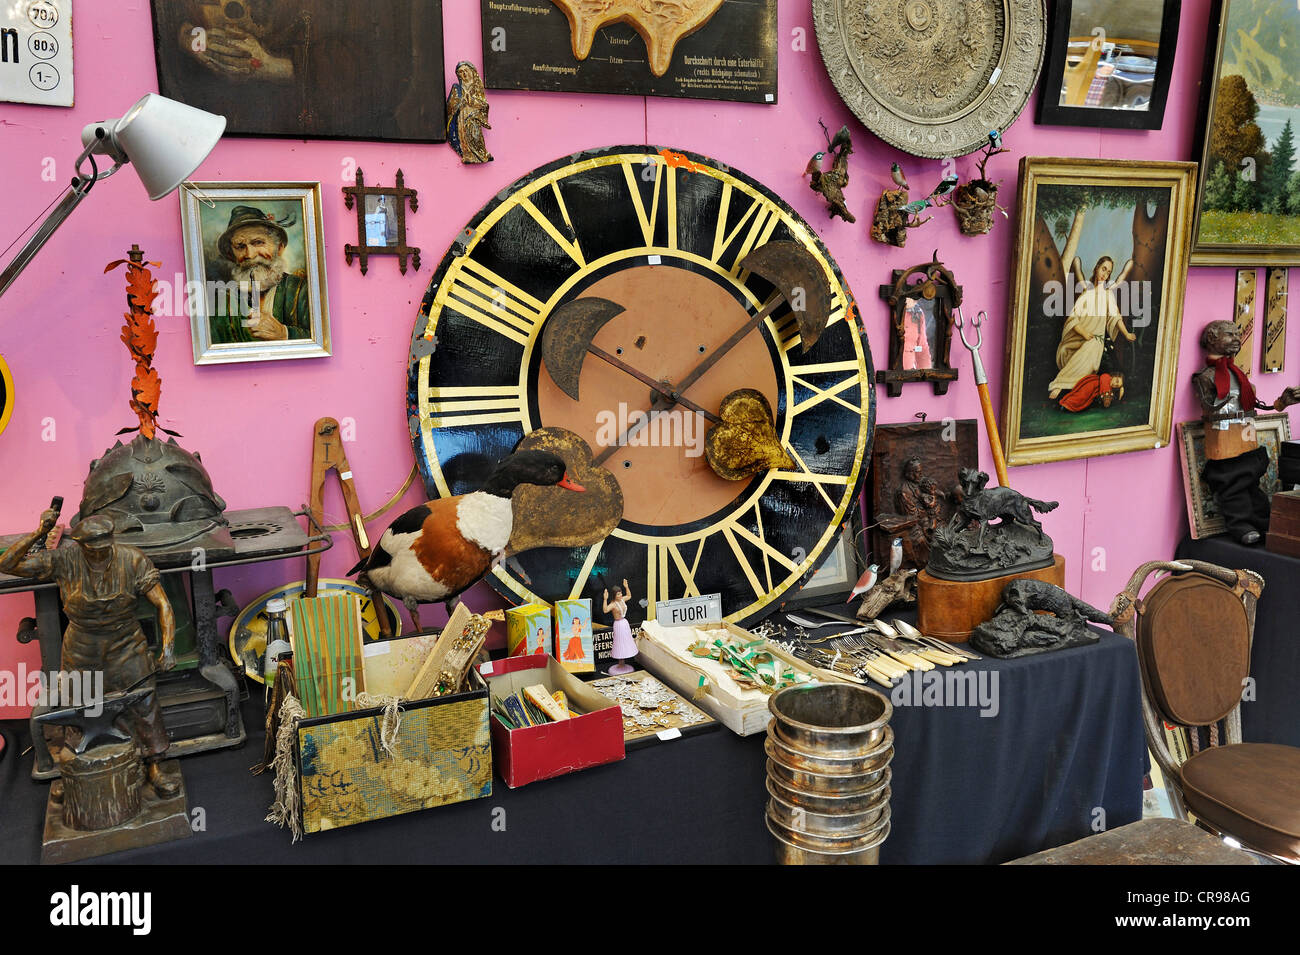 Large clock face and junk, Auer Dult market, Munich, Bavaria, Germany, Europe - Stock Image